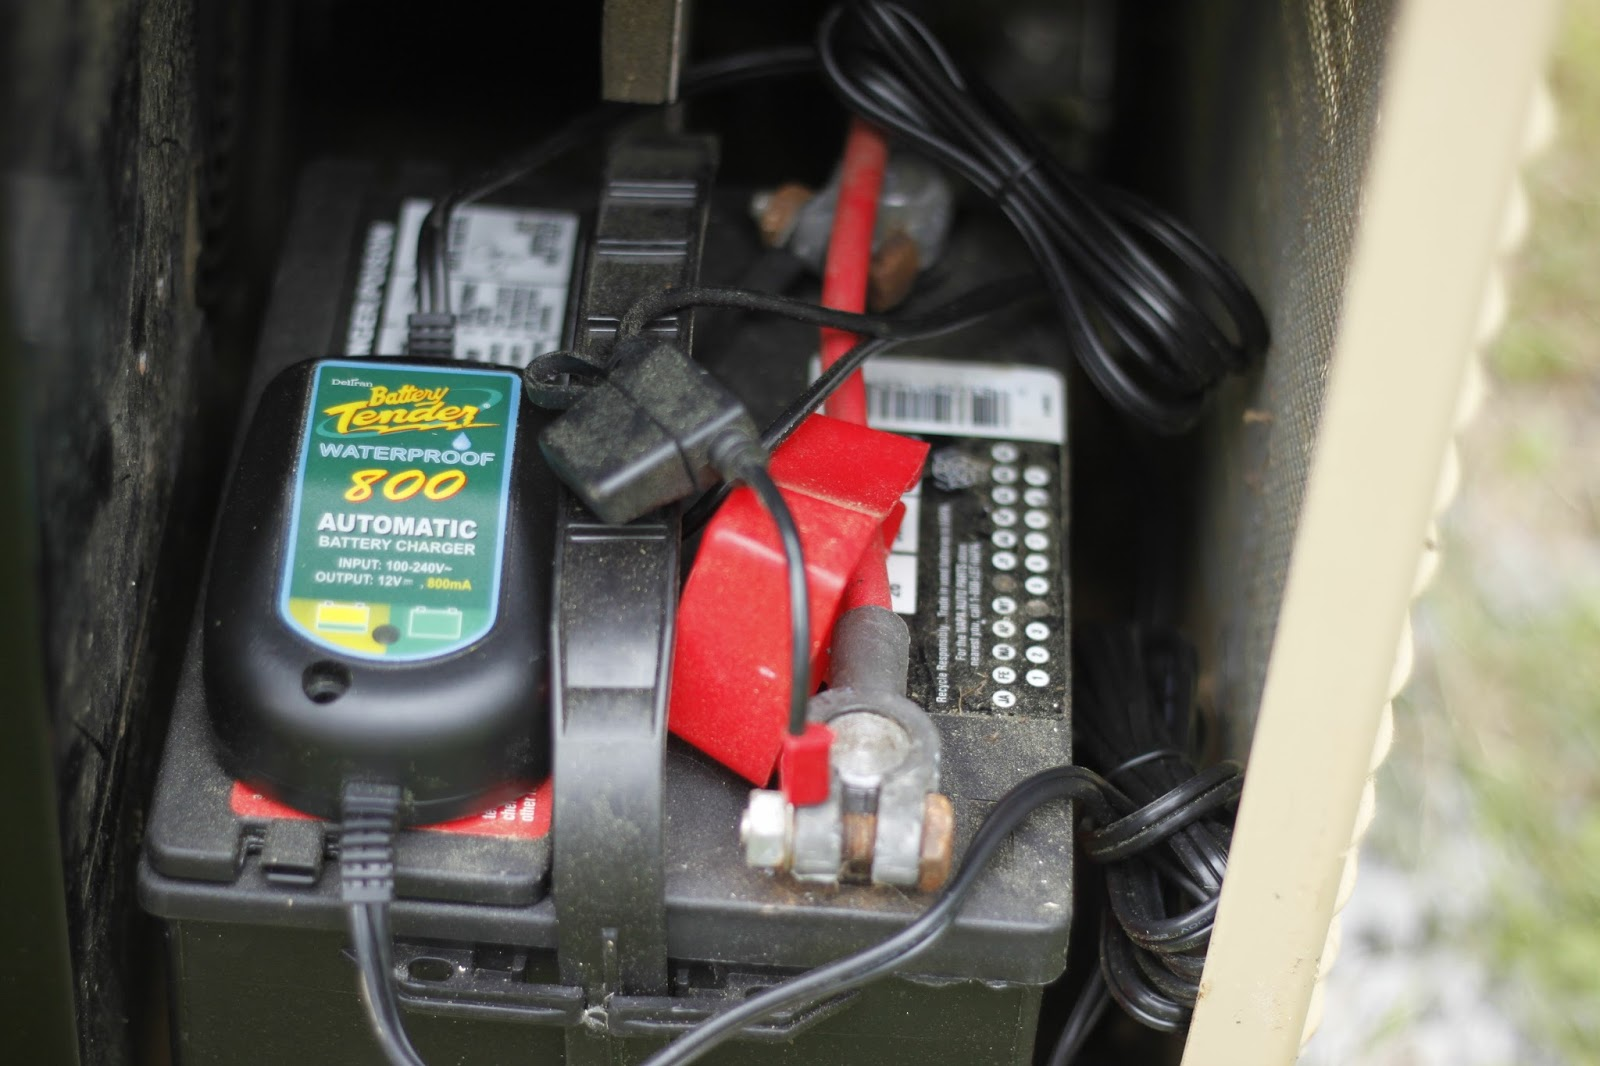 charger%2Bon%2Bbattery fet tricks substitue battery charger for generac generator generac battery charger wiring diagram at gsmx.co